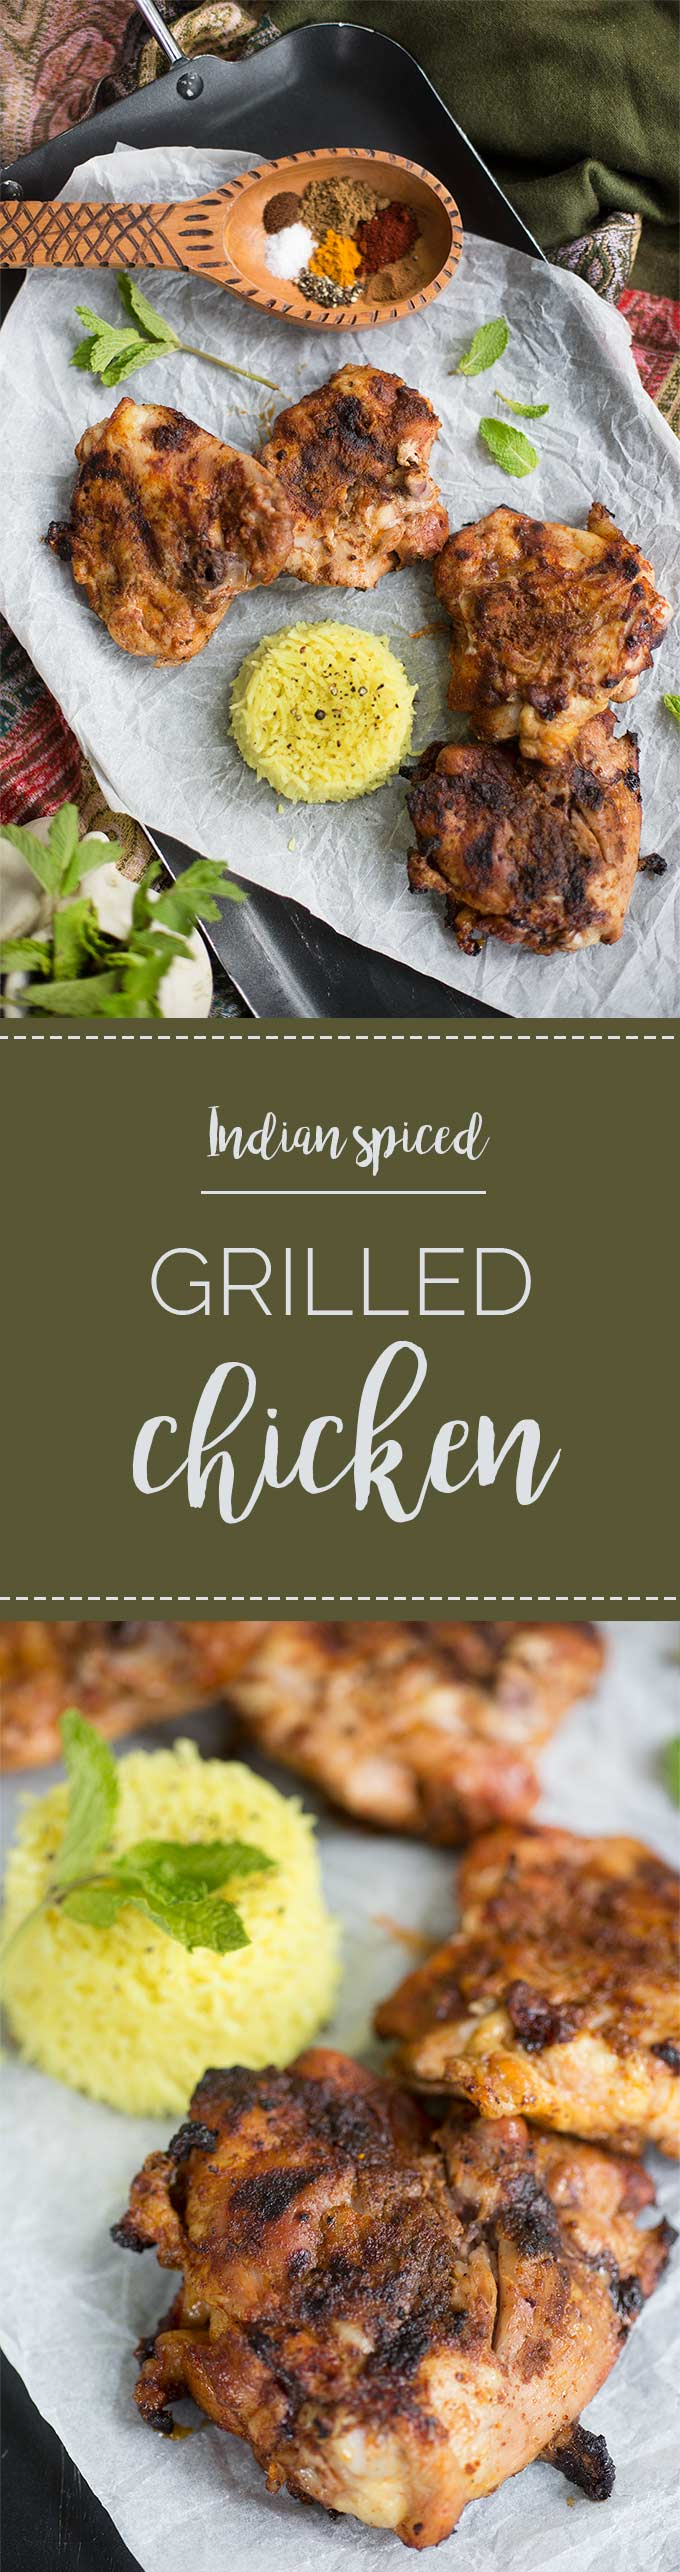 Grilled Indian Chicken: Coriander, cumin, cinnamon, ginger and other spices create the perfect rub for this flavorful Indian grilled chicken!